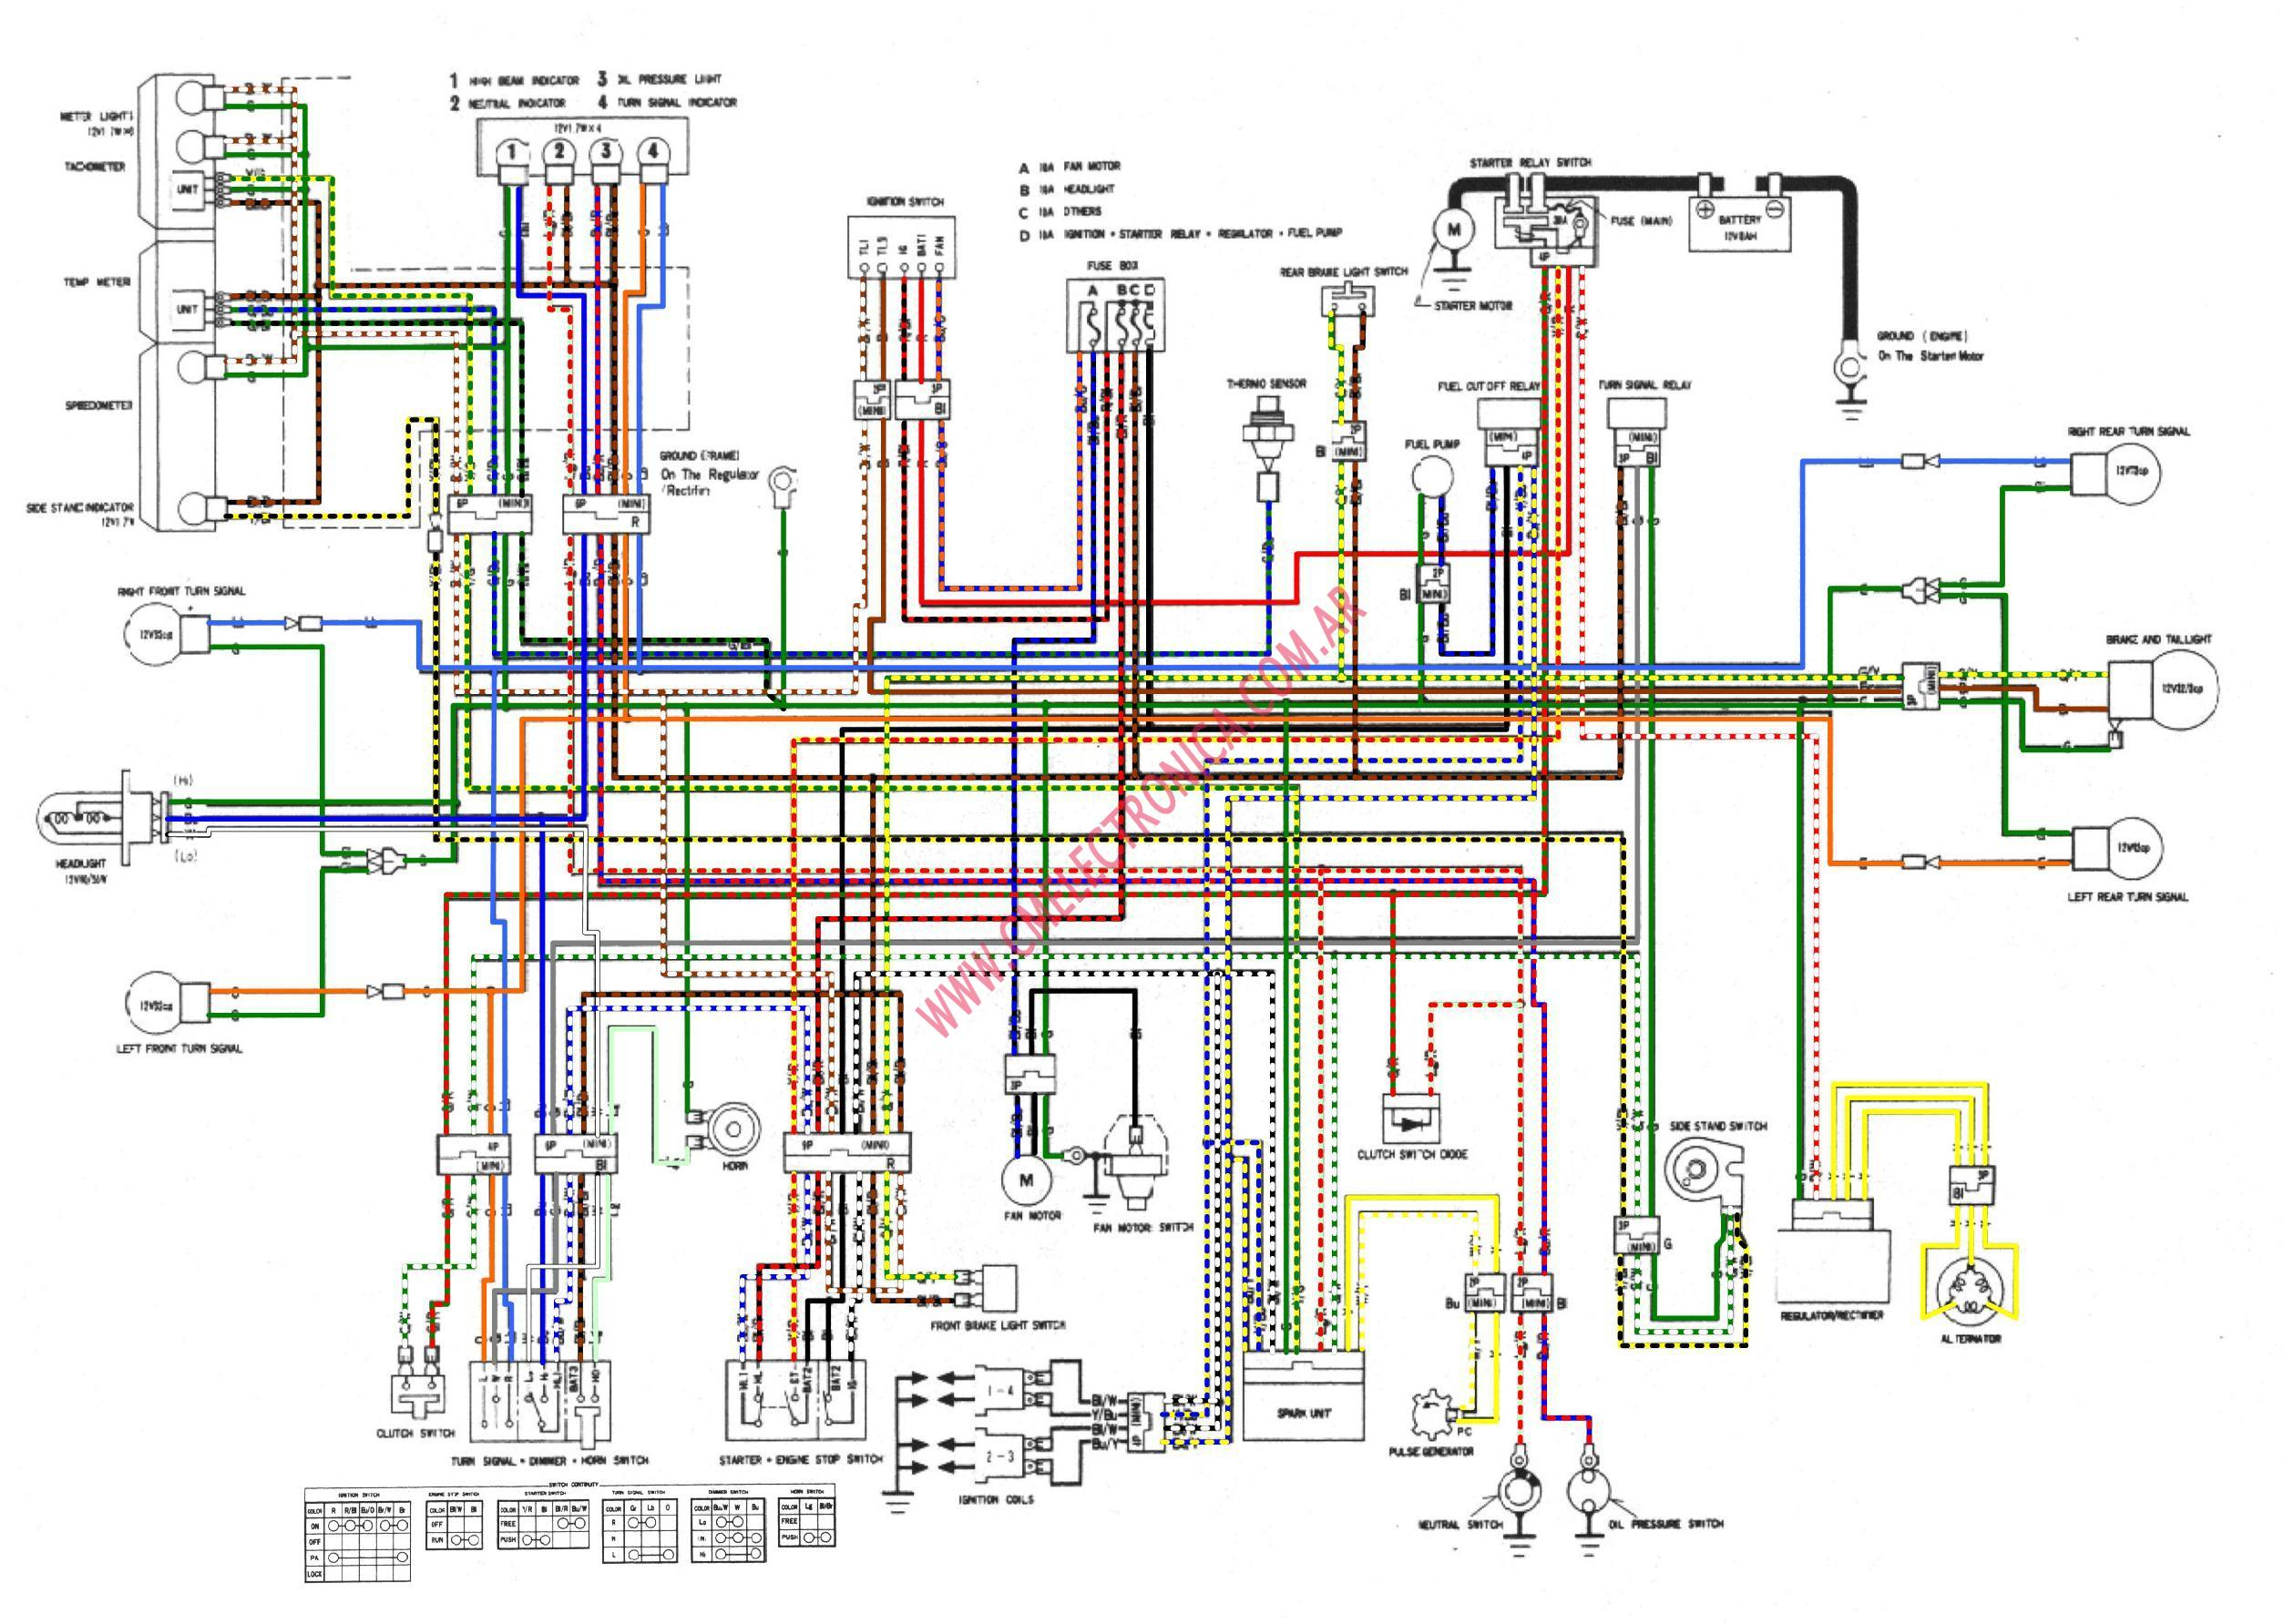 Wiring Diagram For Metrpolitan Scooter Page 3 And Kymco Agility 125 Suzuki Cdi Diagrams Description Honda Cb1